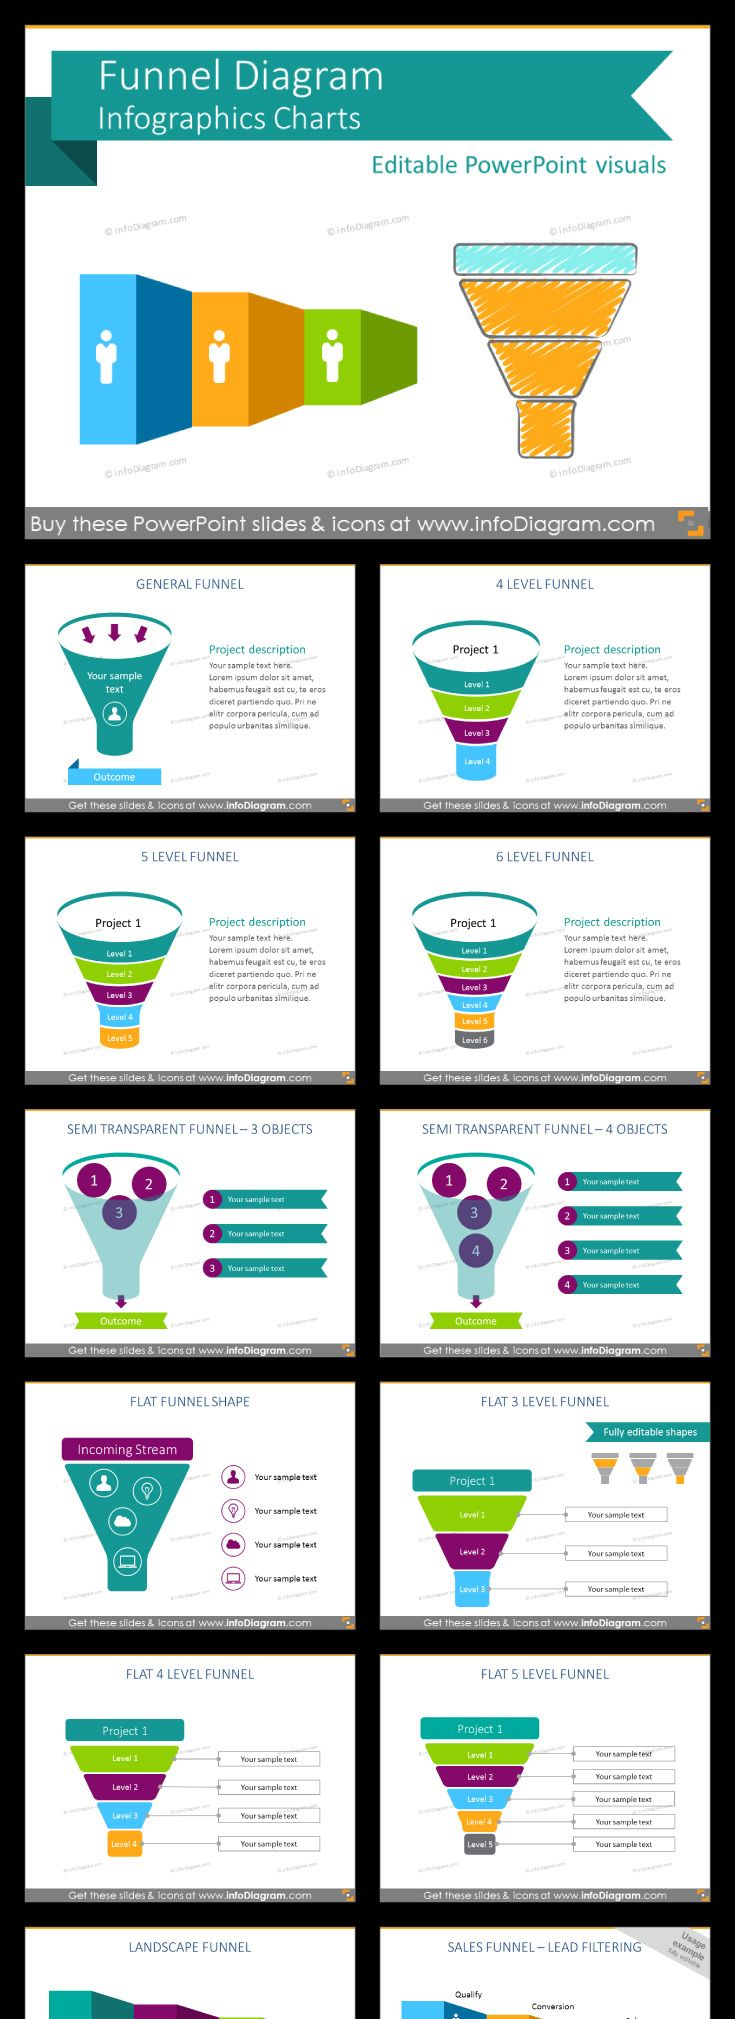 48 best favourite images on pinterest | info graphics, infographic, Modern powerpoint